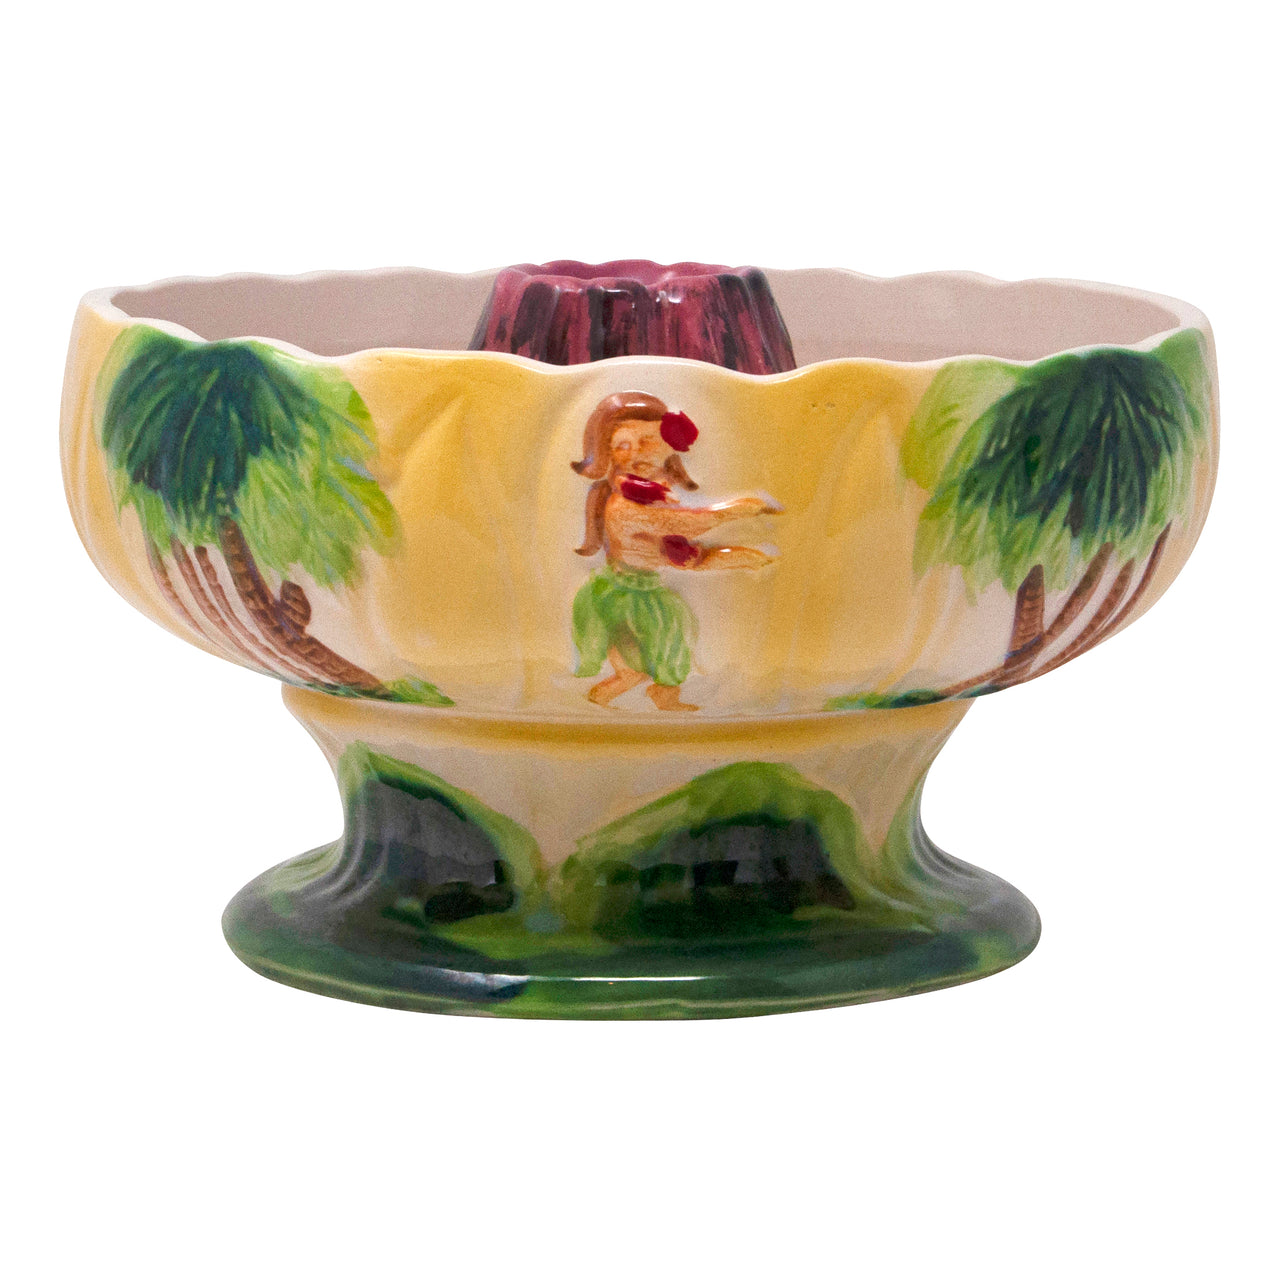 Vintage Ceramic Volcano Scorpion Bowl | The Hour Shop